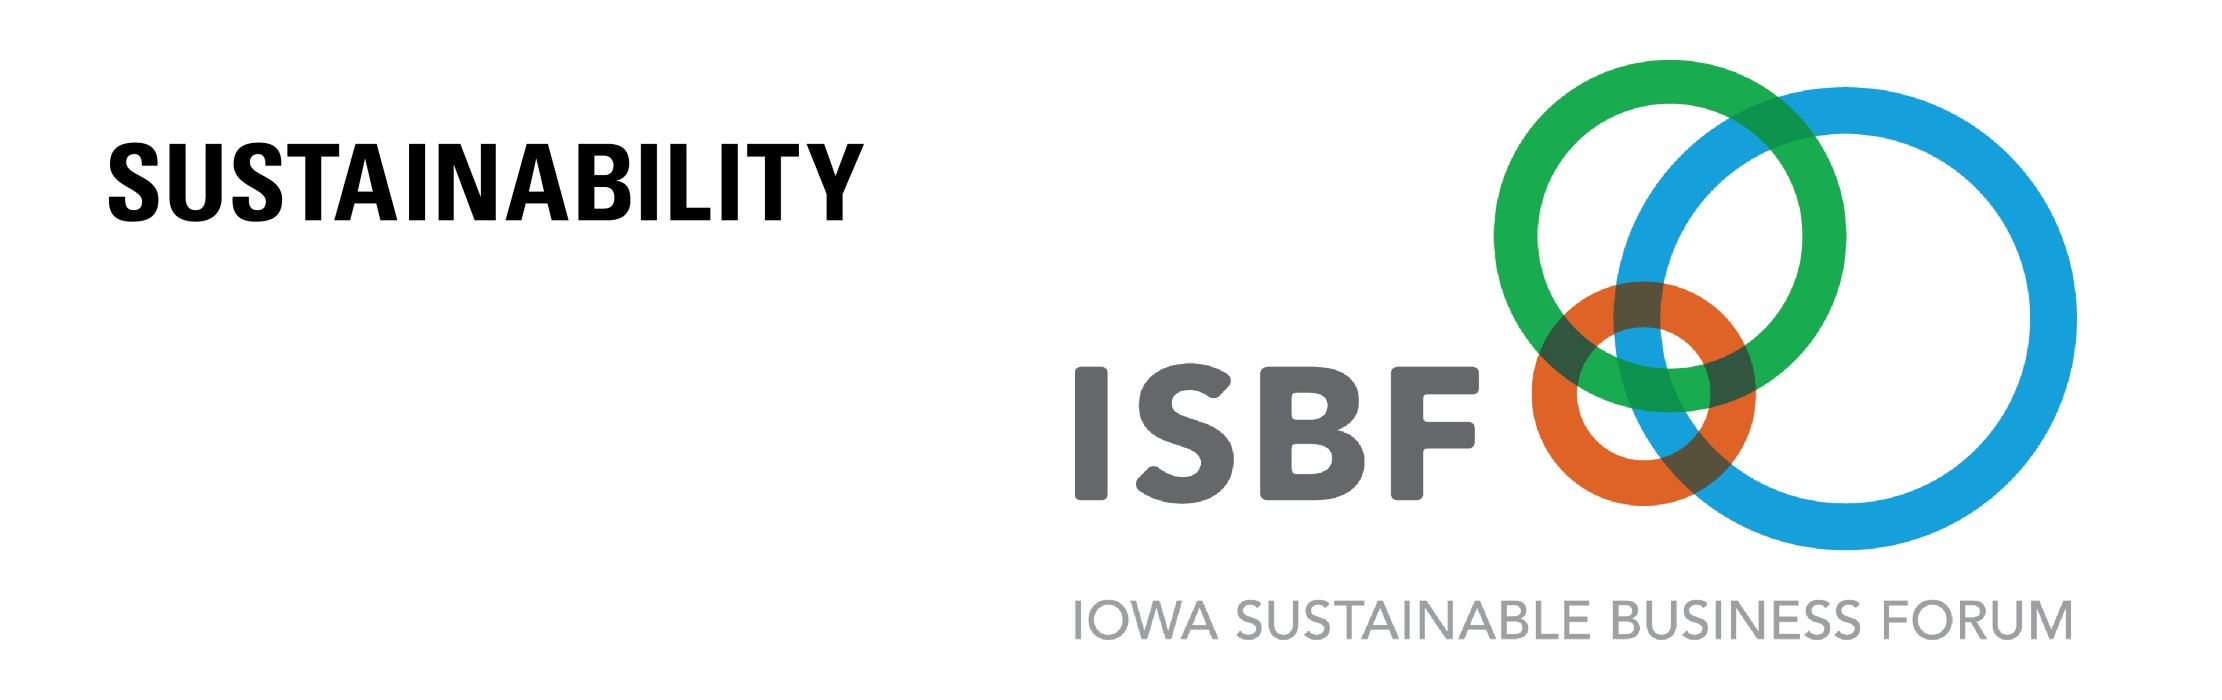 The logo of the Iowa Sustainability Business Forum (ISBF) - blue, green, and brown circles: Sustainability.